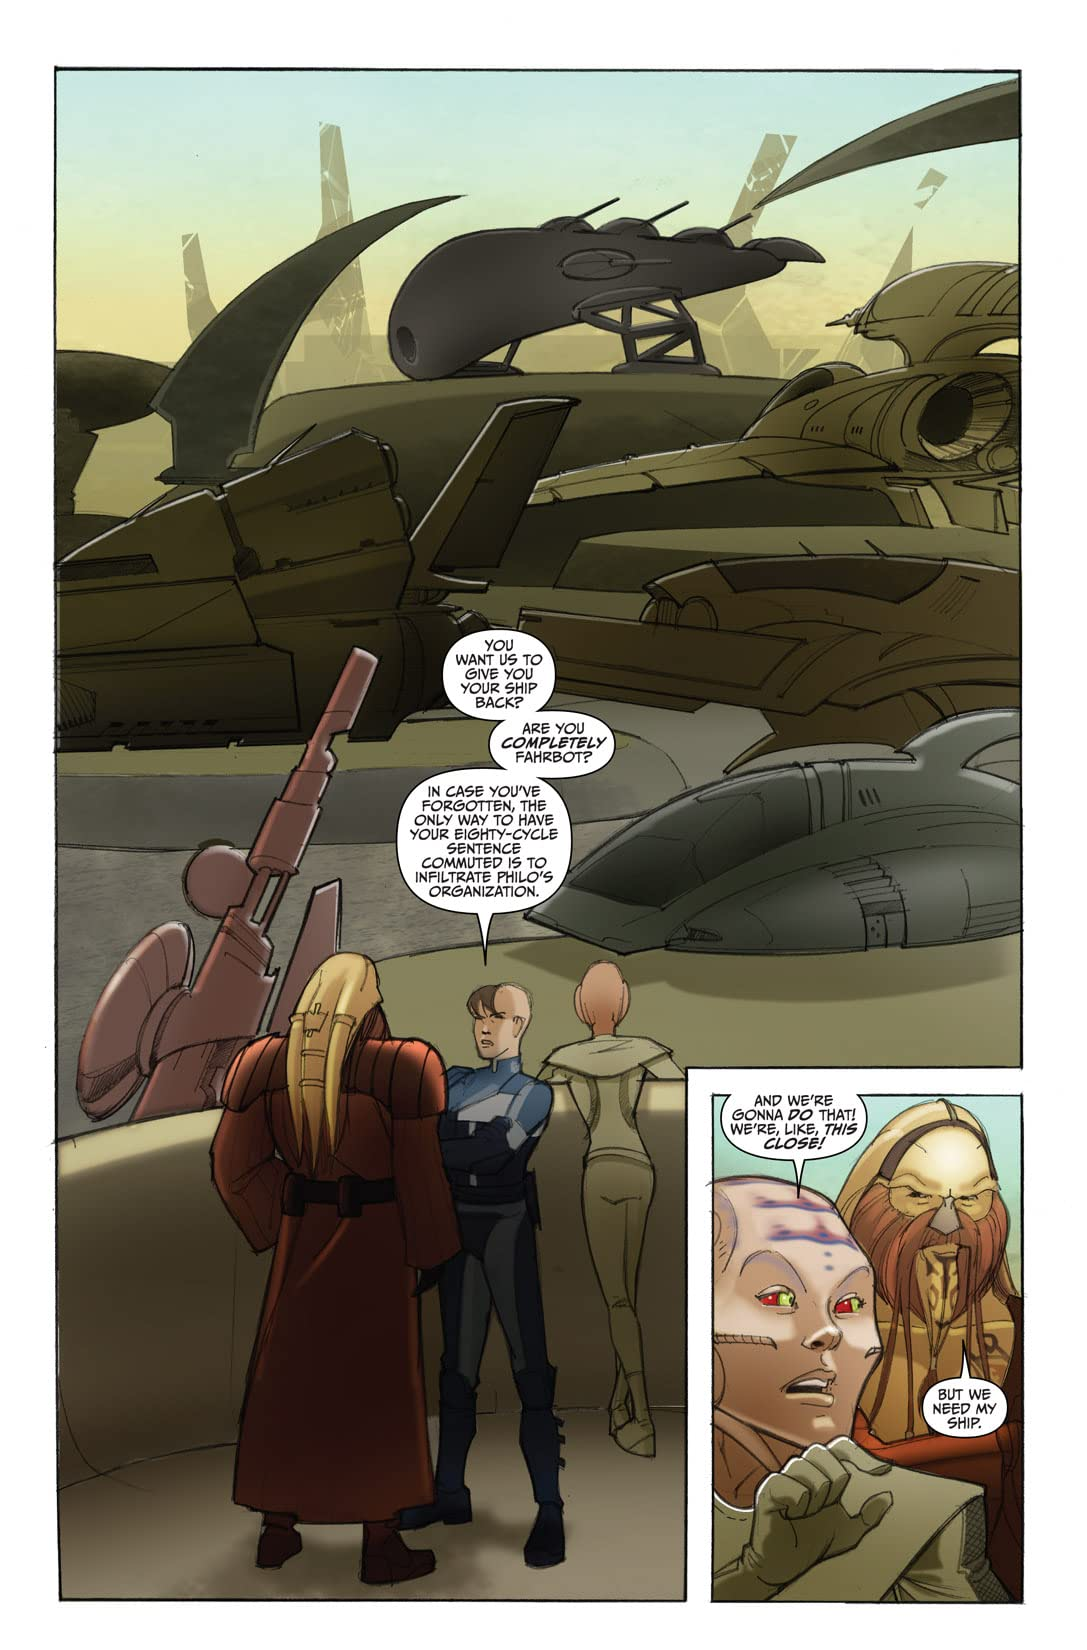 Farscape: D'Argo's Quest Vol. 3 #3 (of 4)